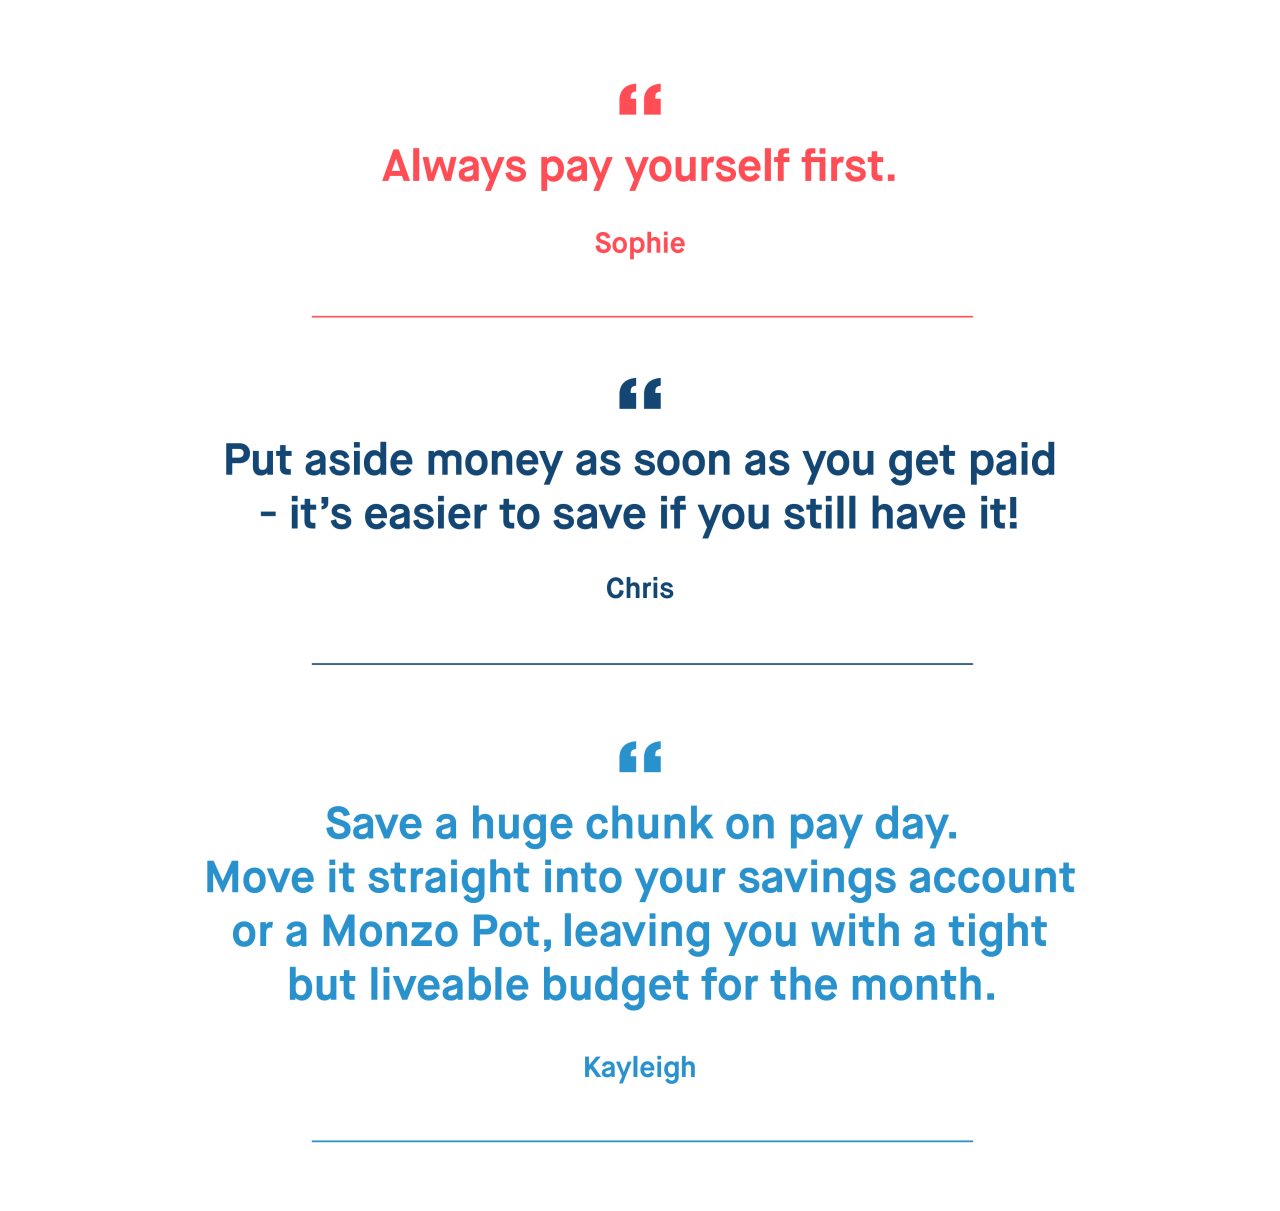 Sophie – Always pay yourself first.   Chris – Put aside money as soon as you get paid – it's easier to save if you still have it!   Kayleigh – Save a huge chunk on pay day. Move it straight into your savings account or a Monzo Pot, leaving you with a tight but liveable budget for the month.